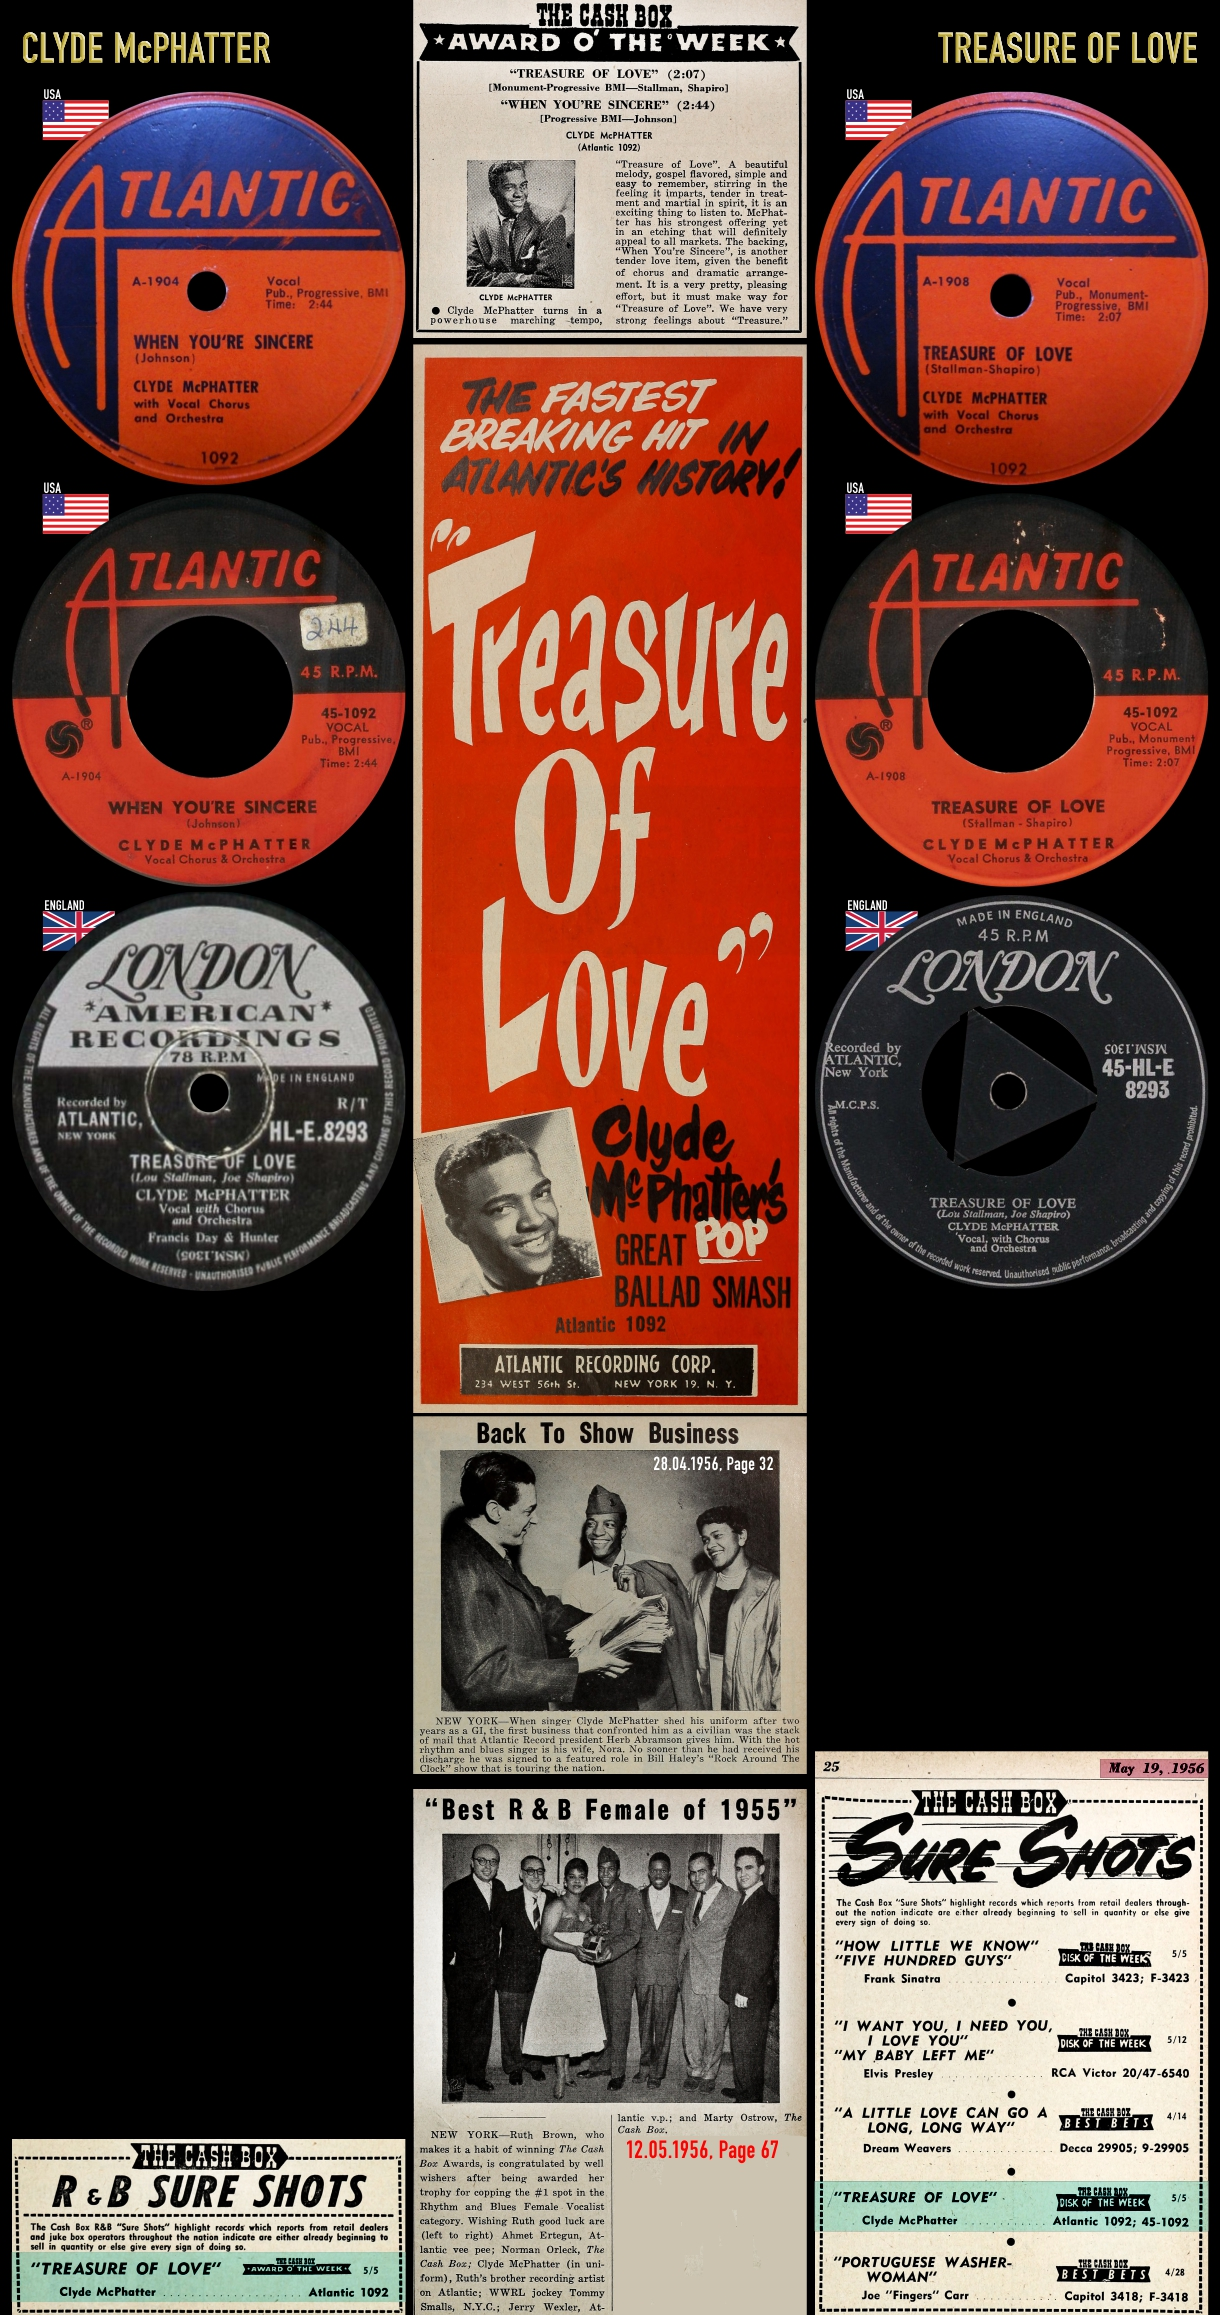 560526_Clyde-McPhatter_Treasure-Of-Love